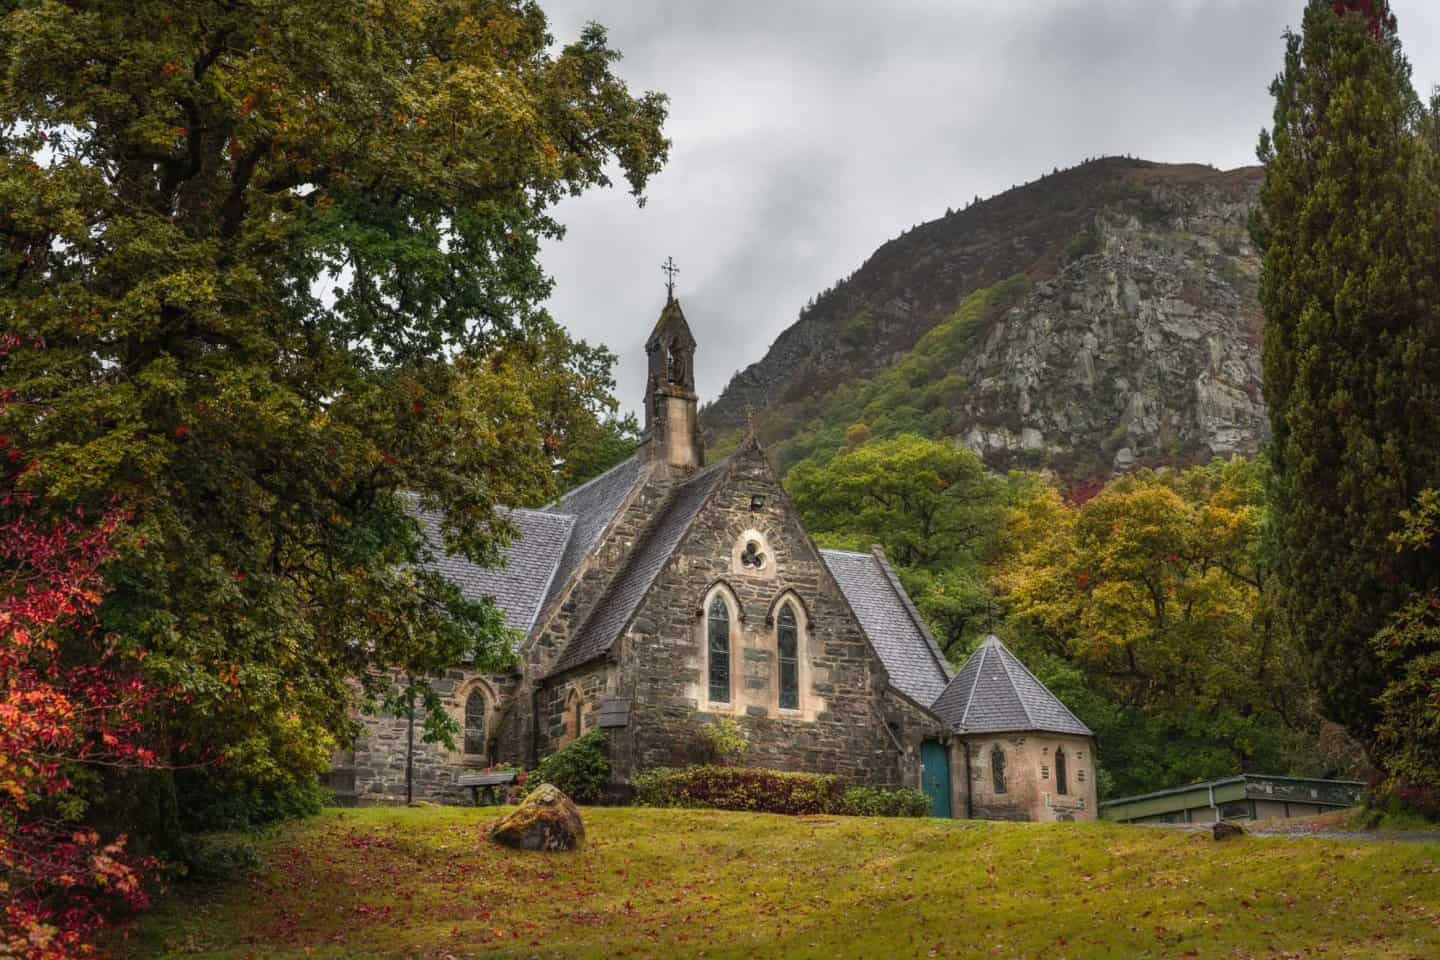 An old church in Loch Lomond and the Trossachs National Park